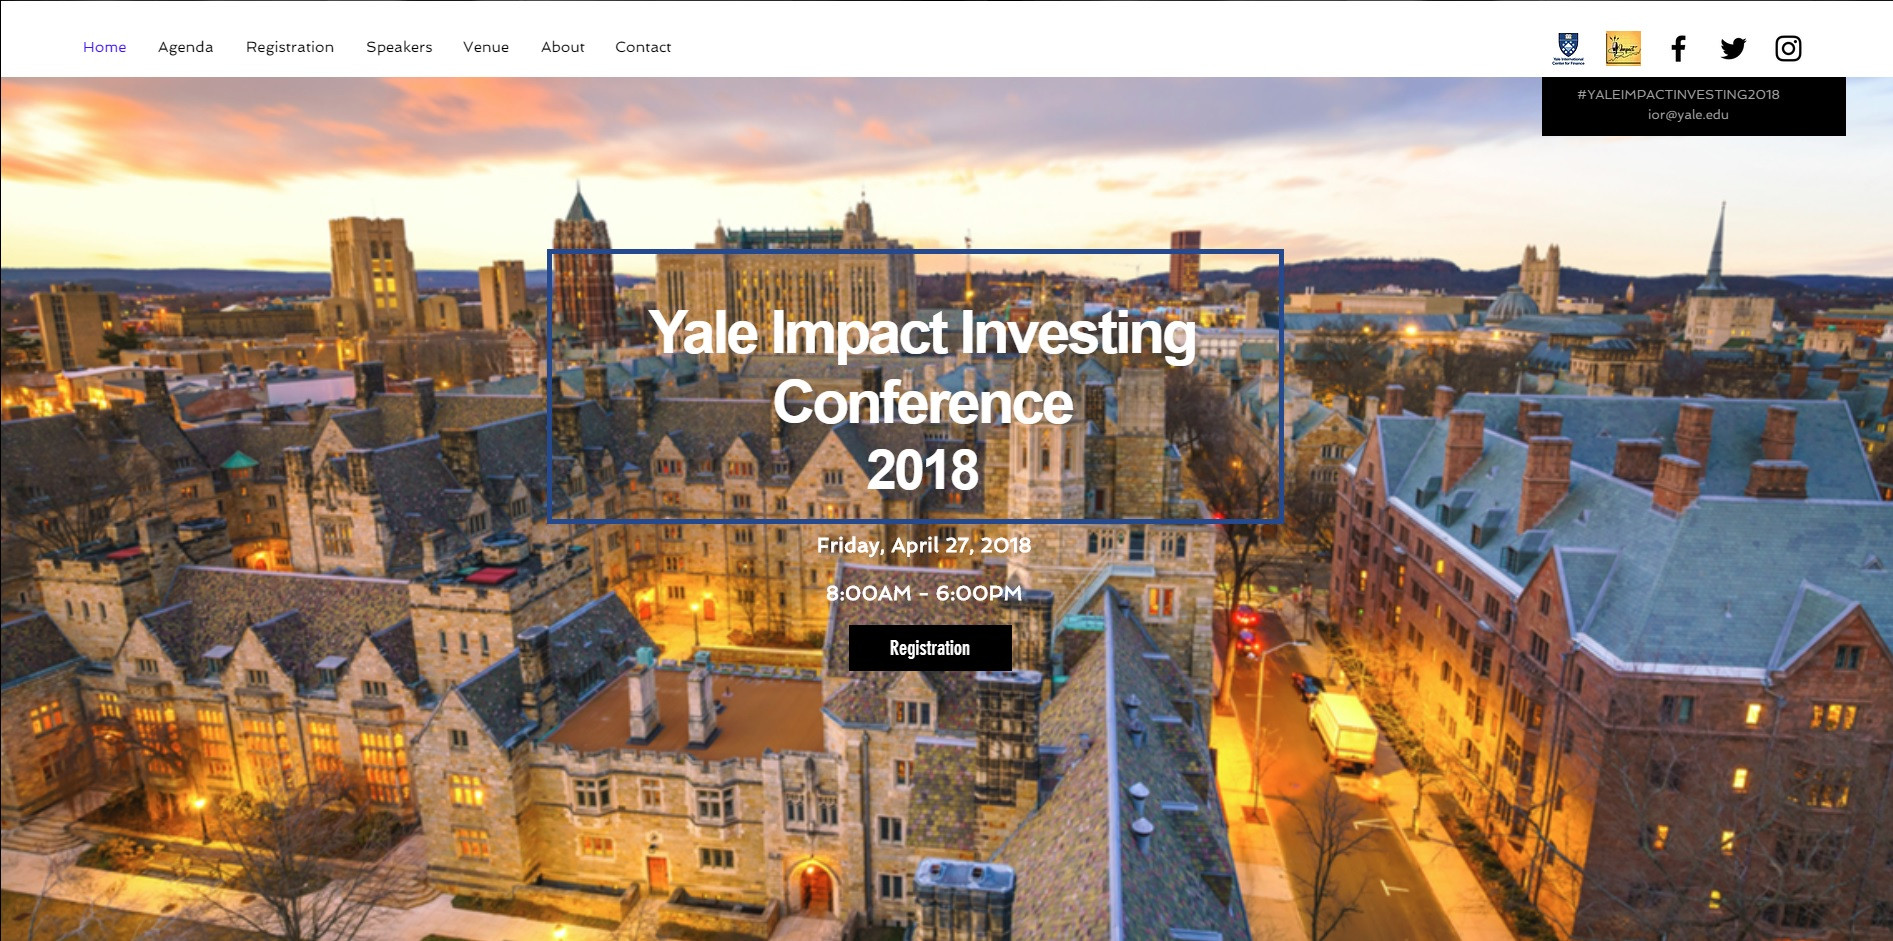 Home | New Haven | Yale Impact Investing Conference